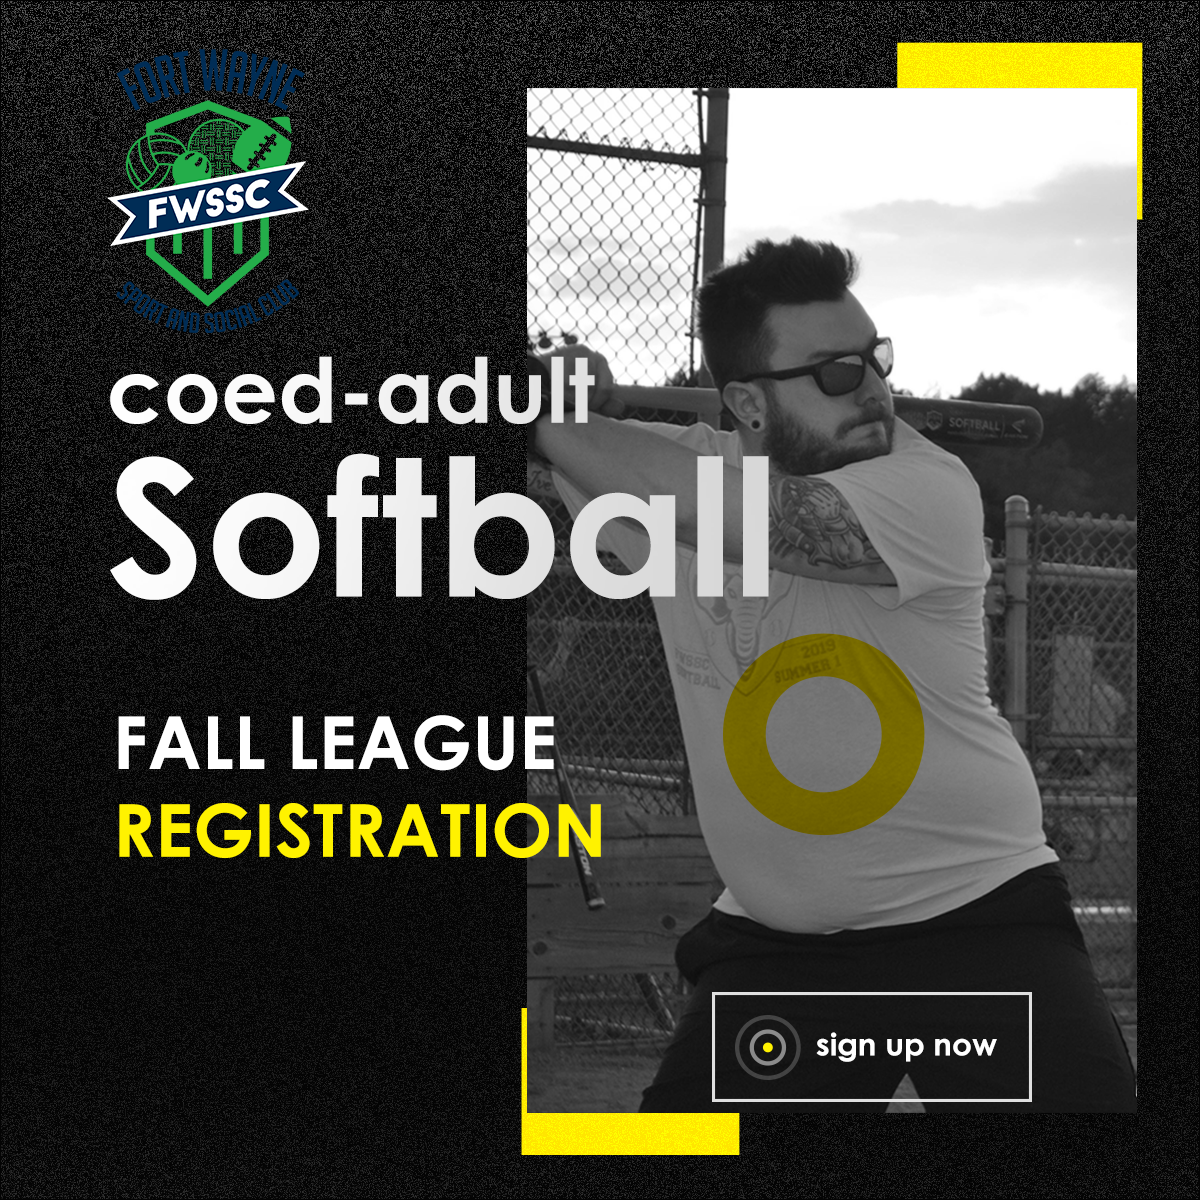 fort wayne sport and social coed adult softball league